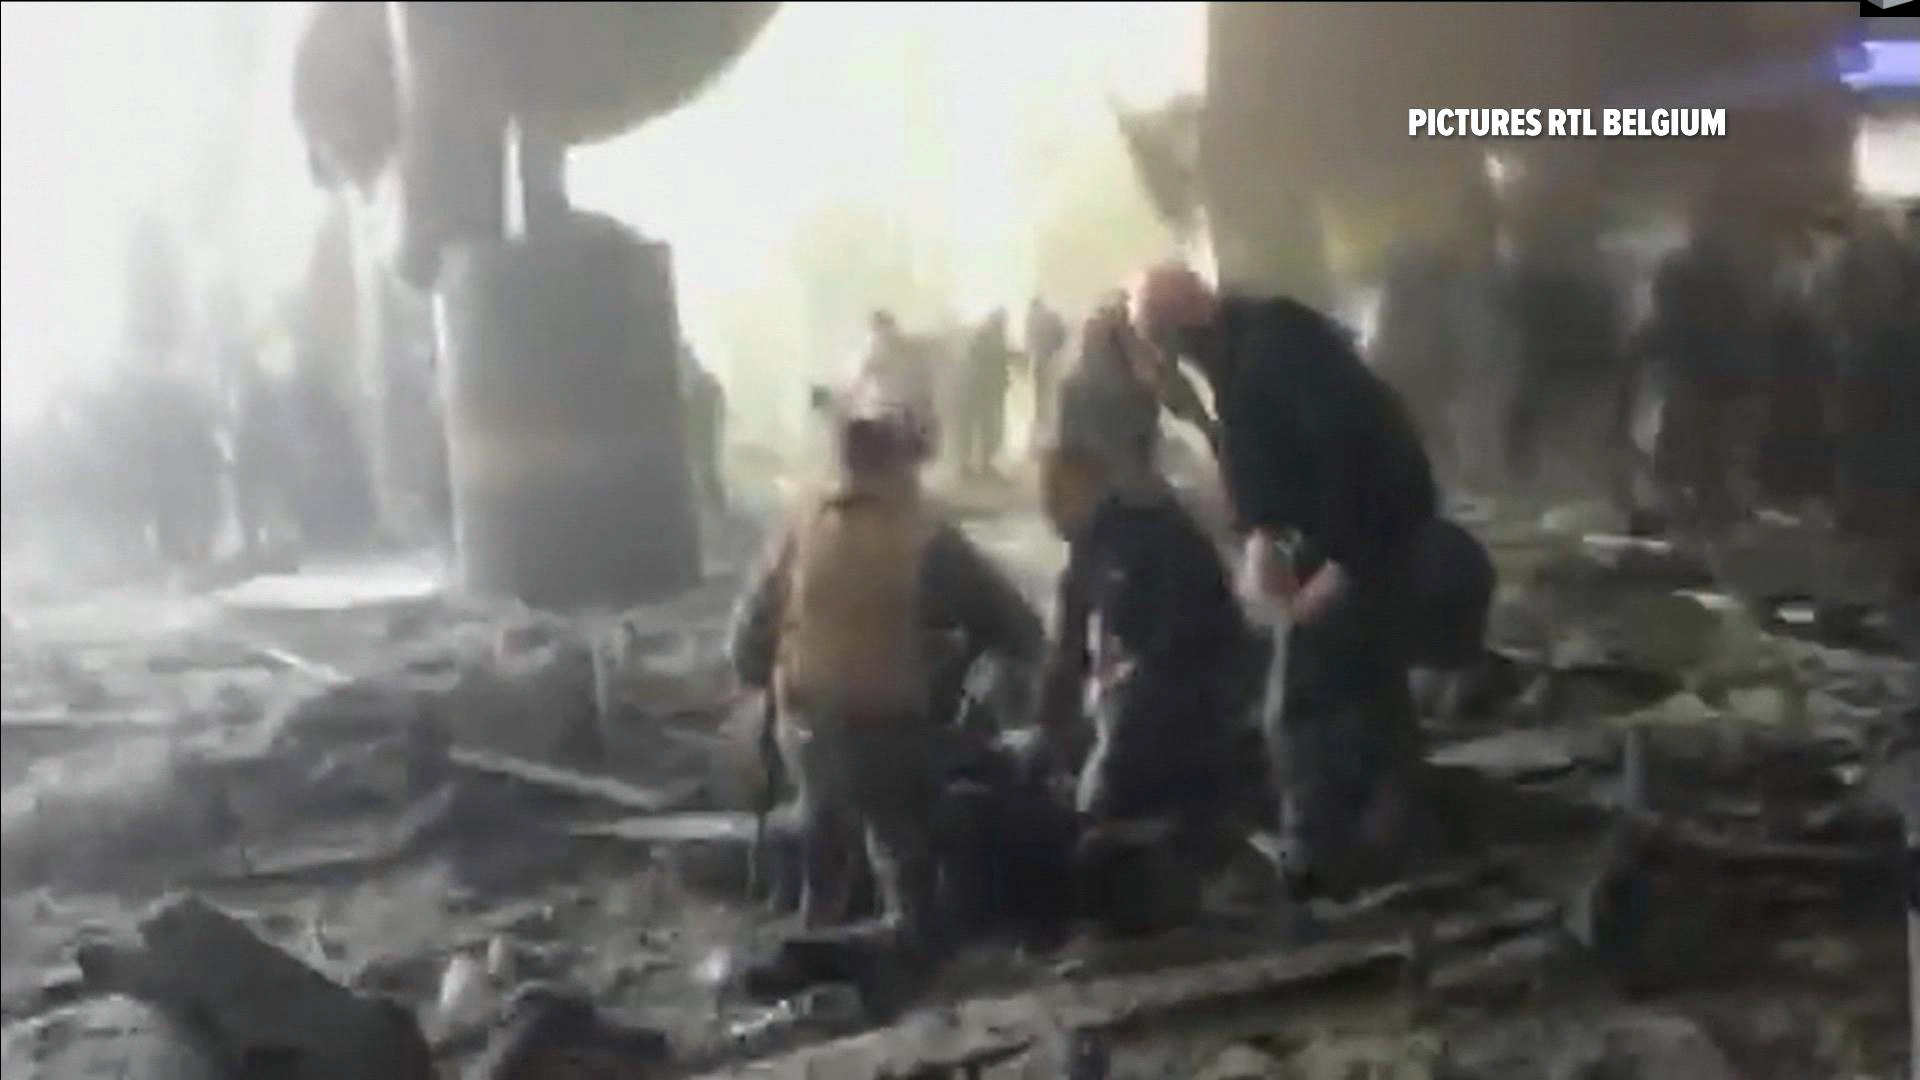 Still from a television image showing the aftermath of the airport bombing.